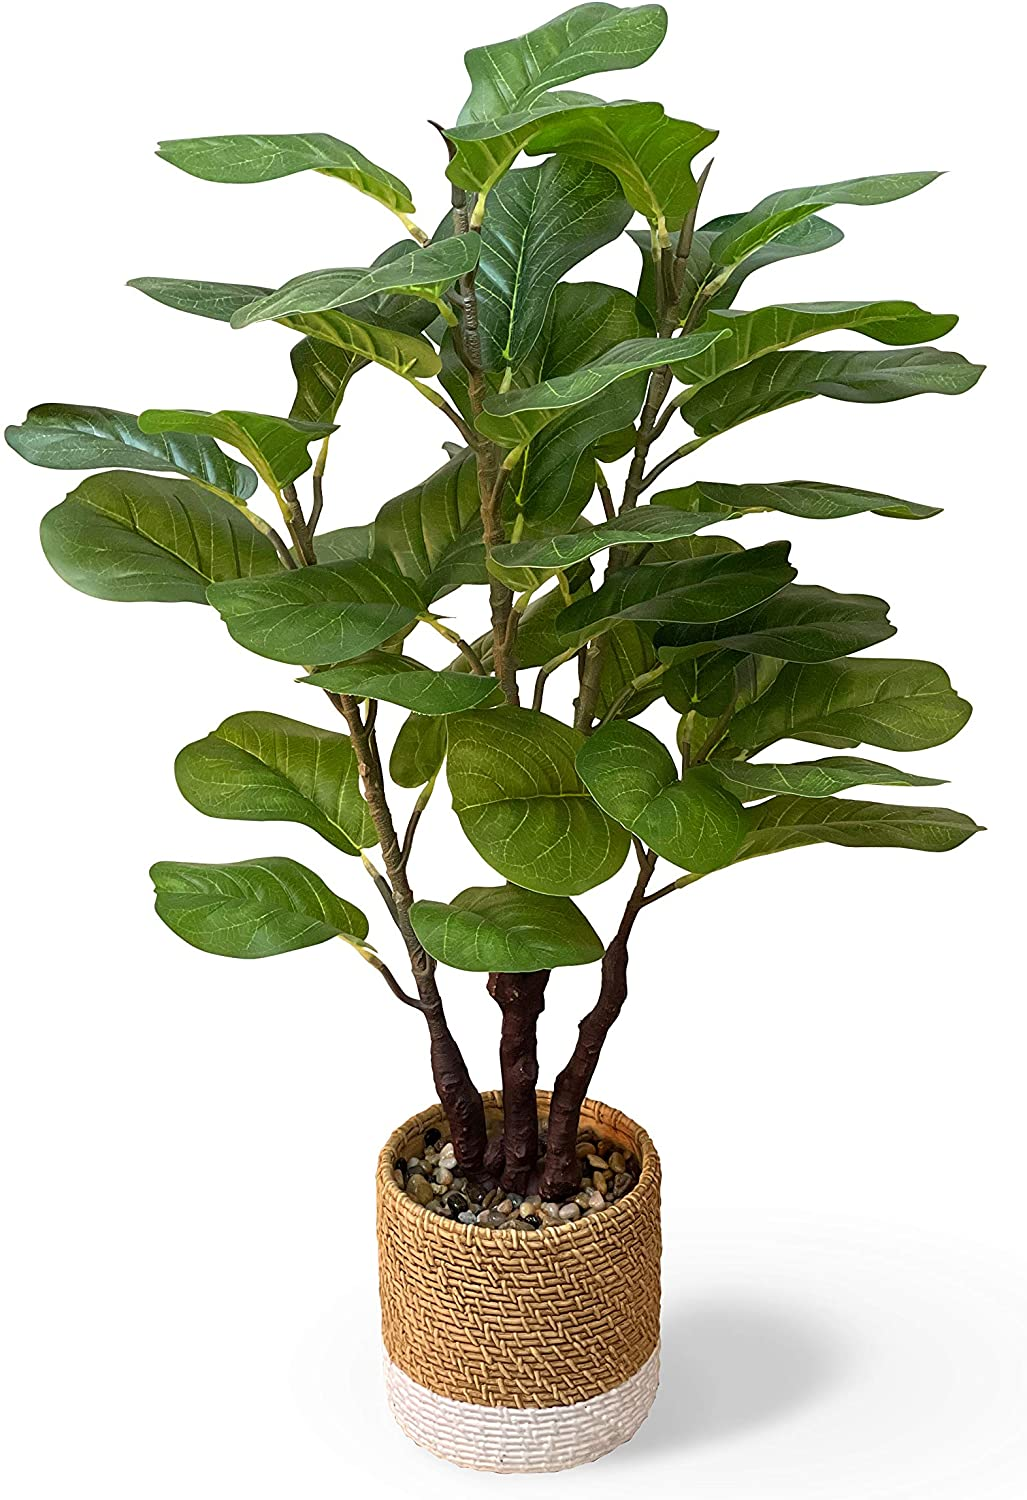 GreenBoxx Faux Fiddle Leaf Fig Tree Artificial – Green Fake Boho Ficus Plants with 45 Total Leaves and Ready to Display Cement Pot for Home Décor, Office Décor, Window, and Wedding Décor - 35